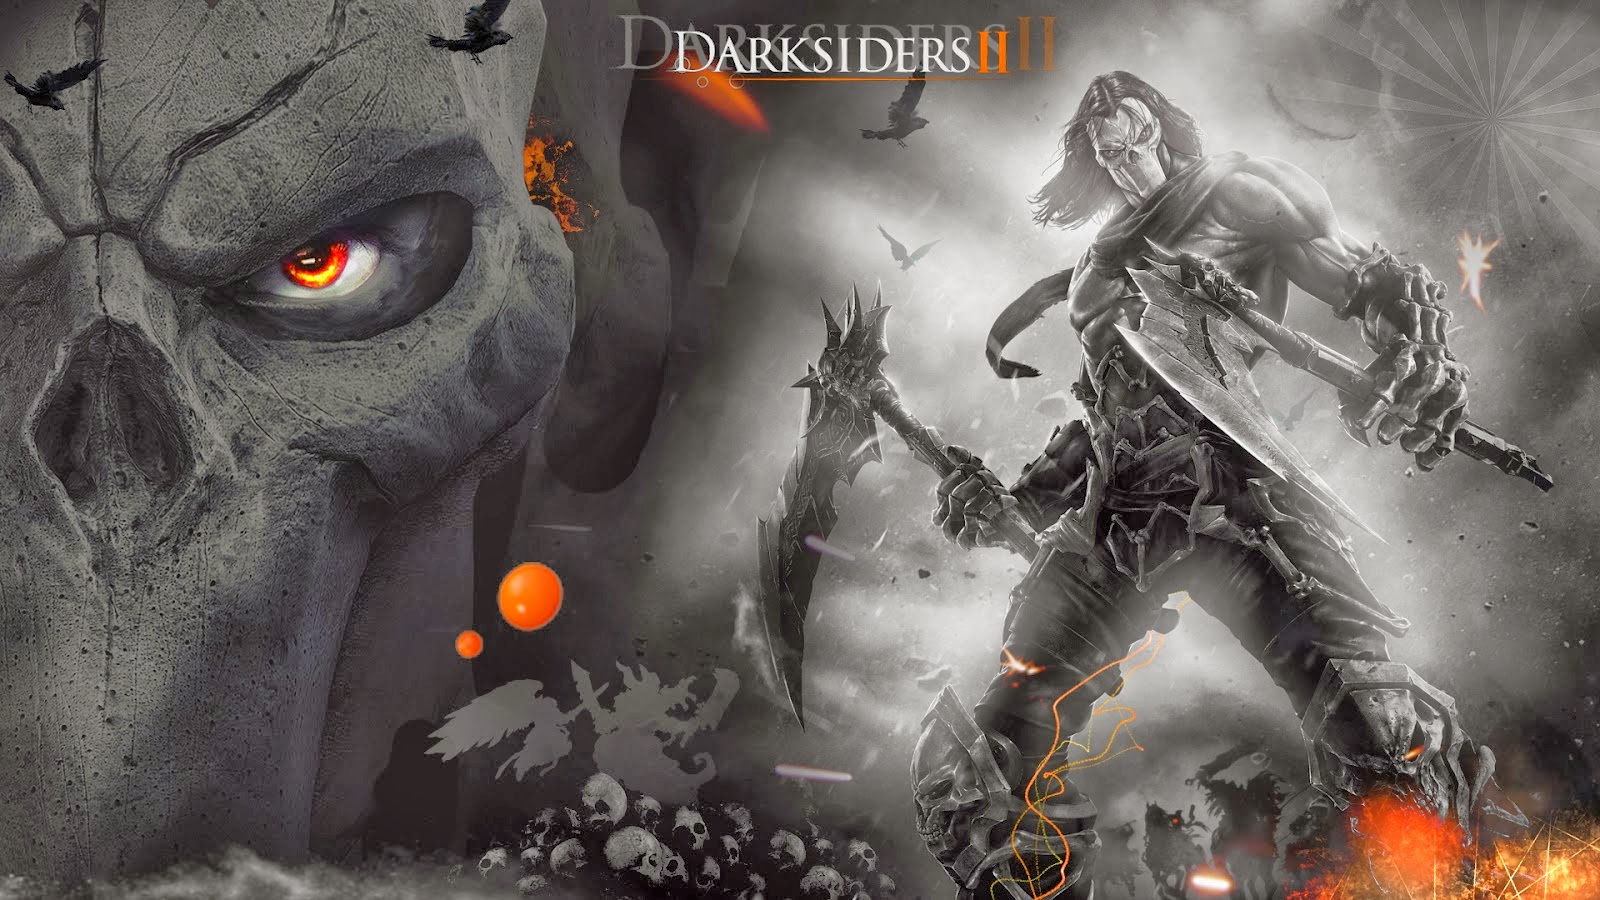 Darksiders II HD Wallpapers   HD Wallpapers Blog 1600x900